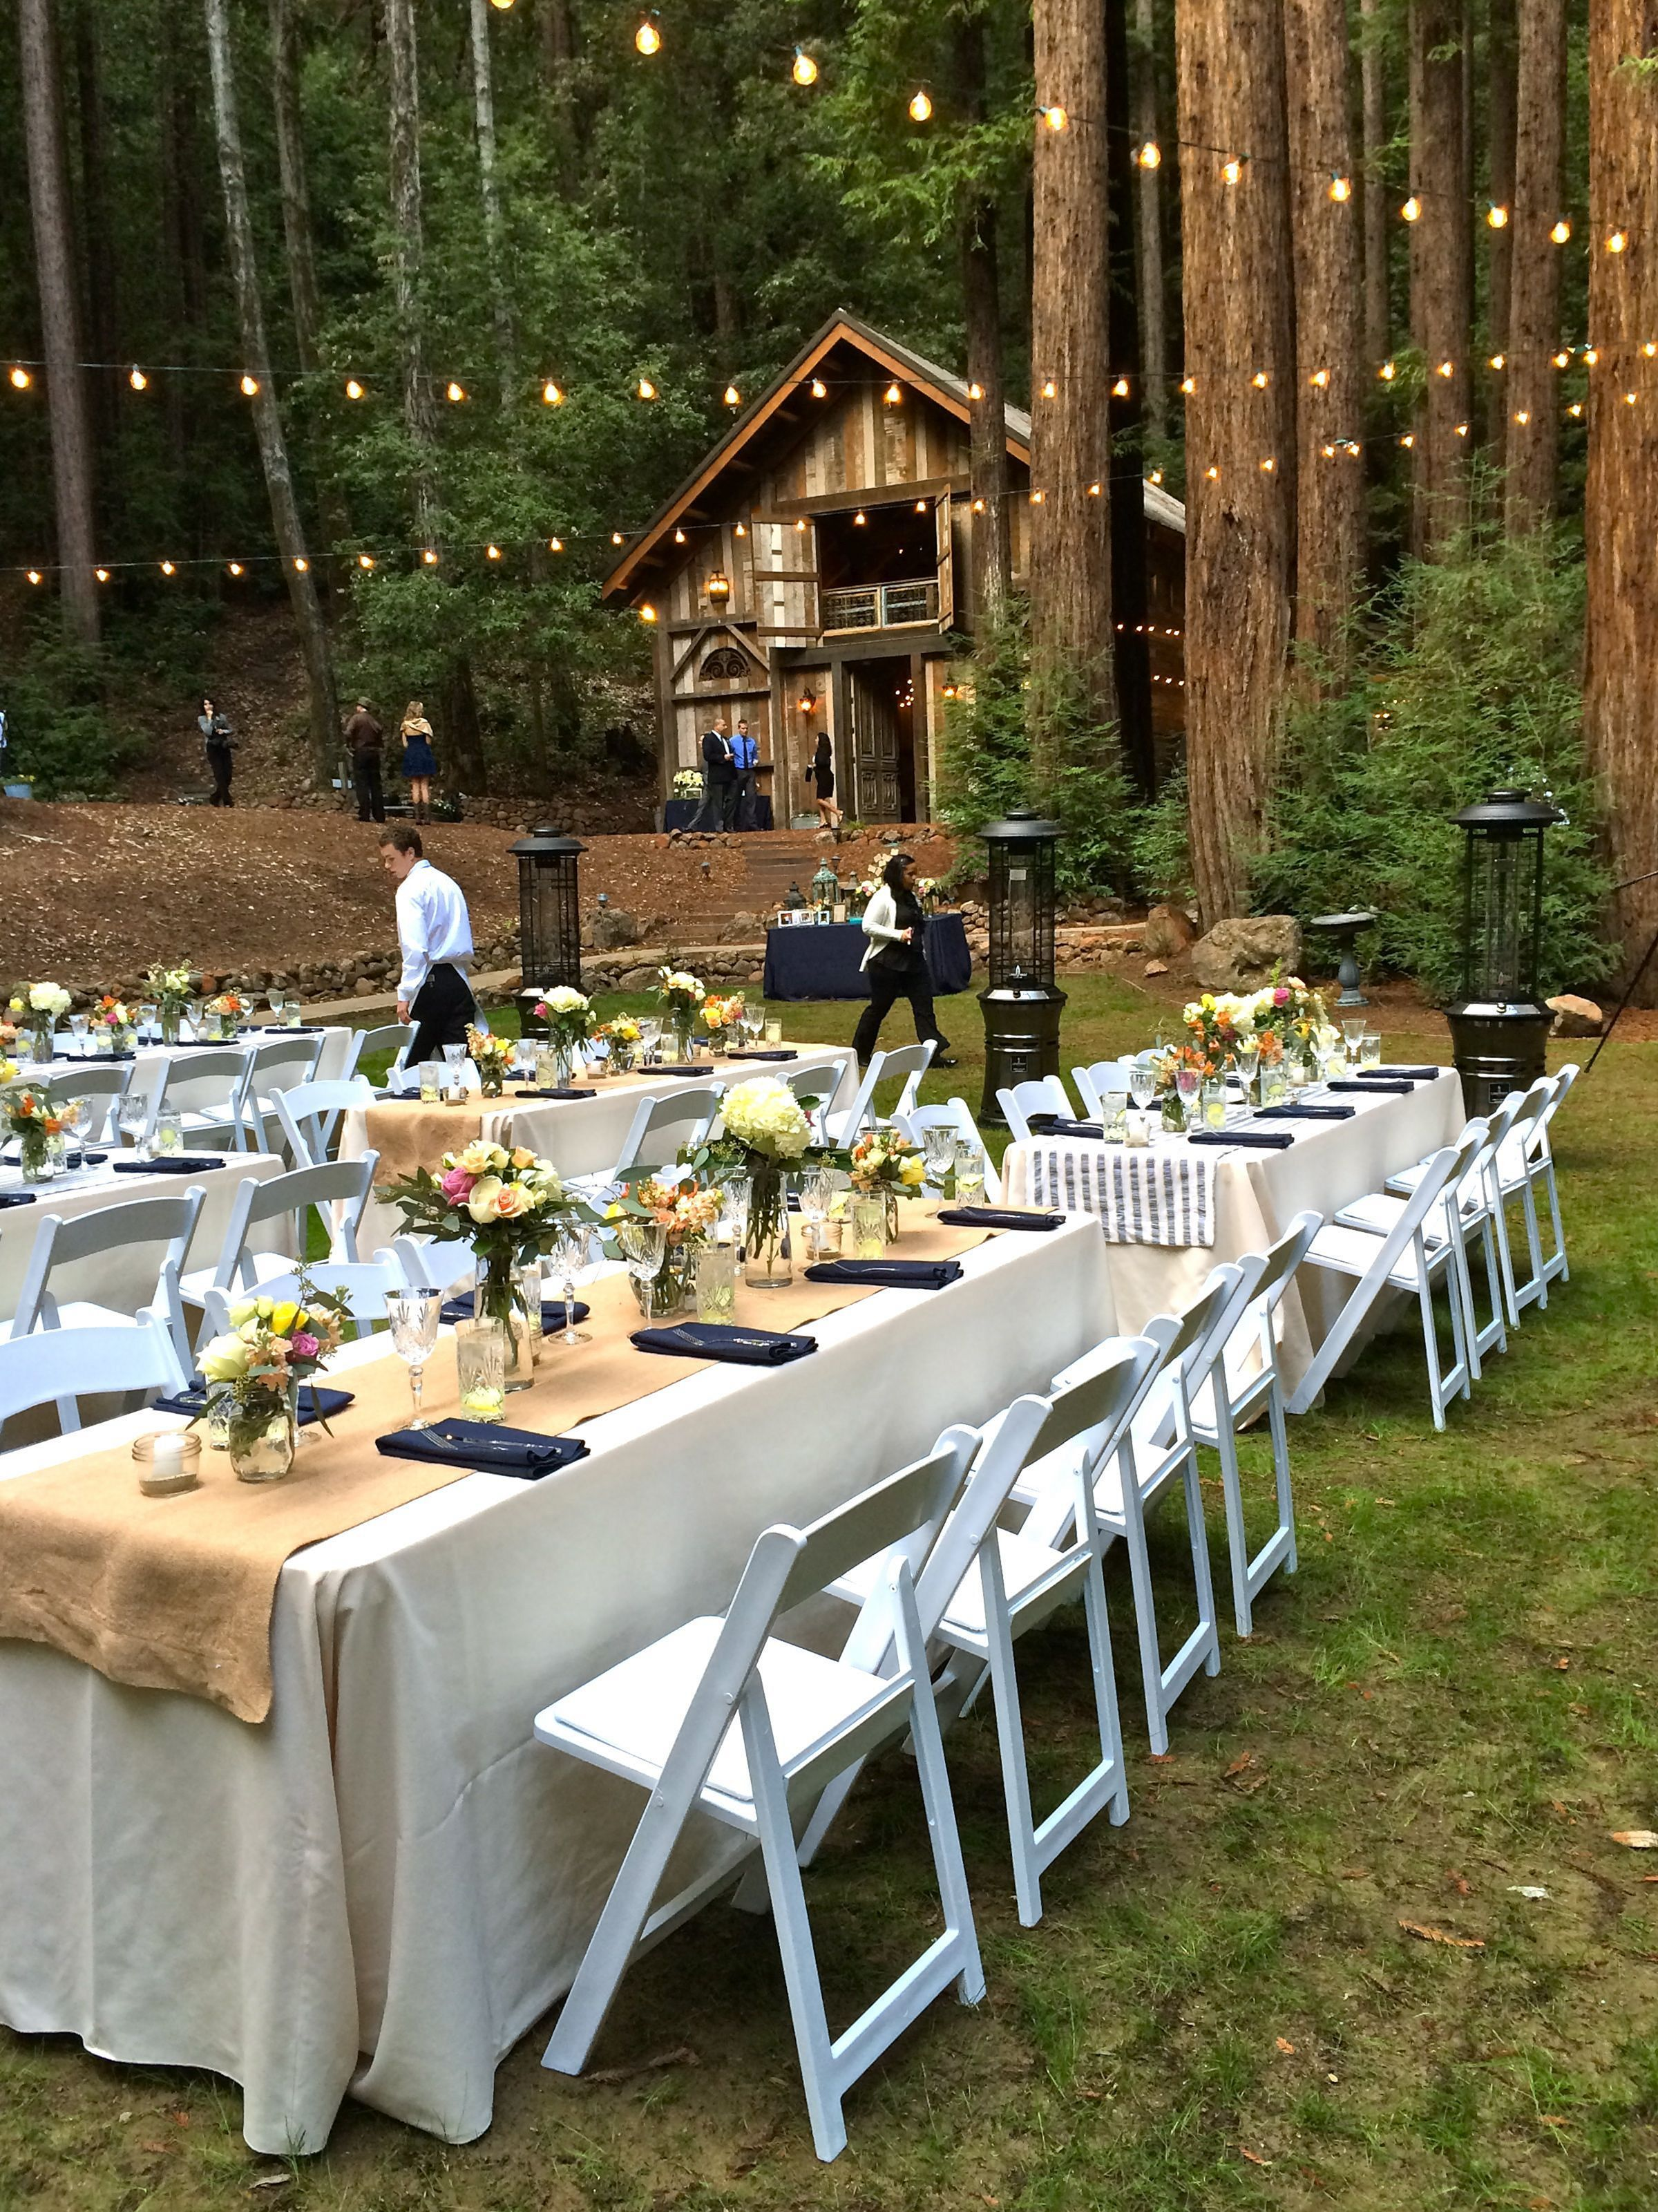 20+ Incredible Redwood Forest Wedding Ideas For Your ...